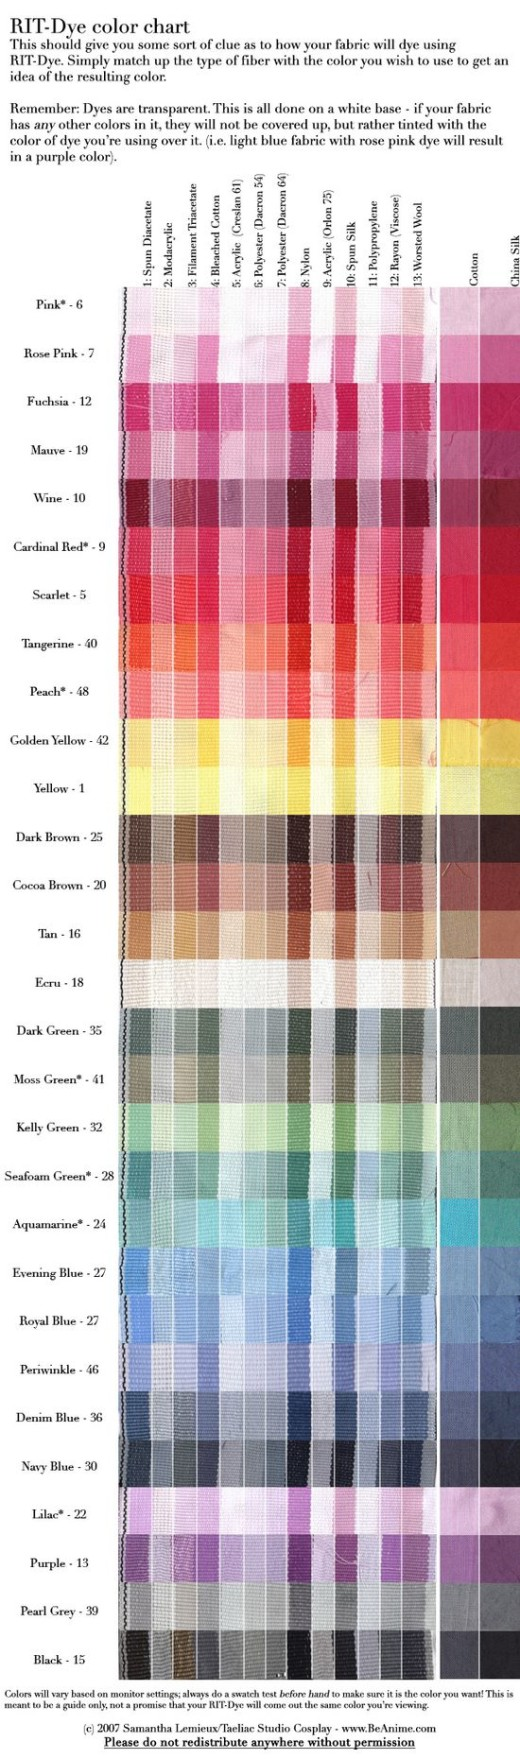 Rit dye color chart recreate somedaycraftiness pinterest rit dye color chart nvjuhfo Images